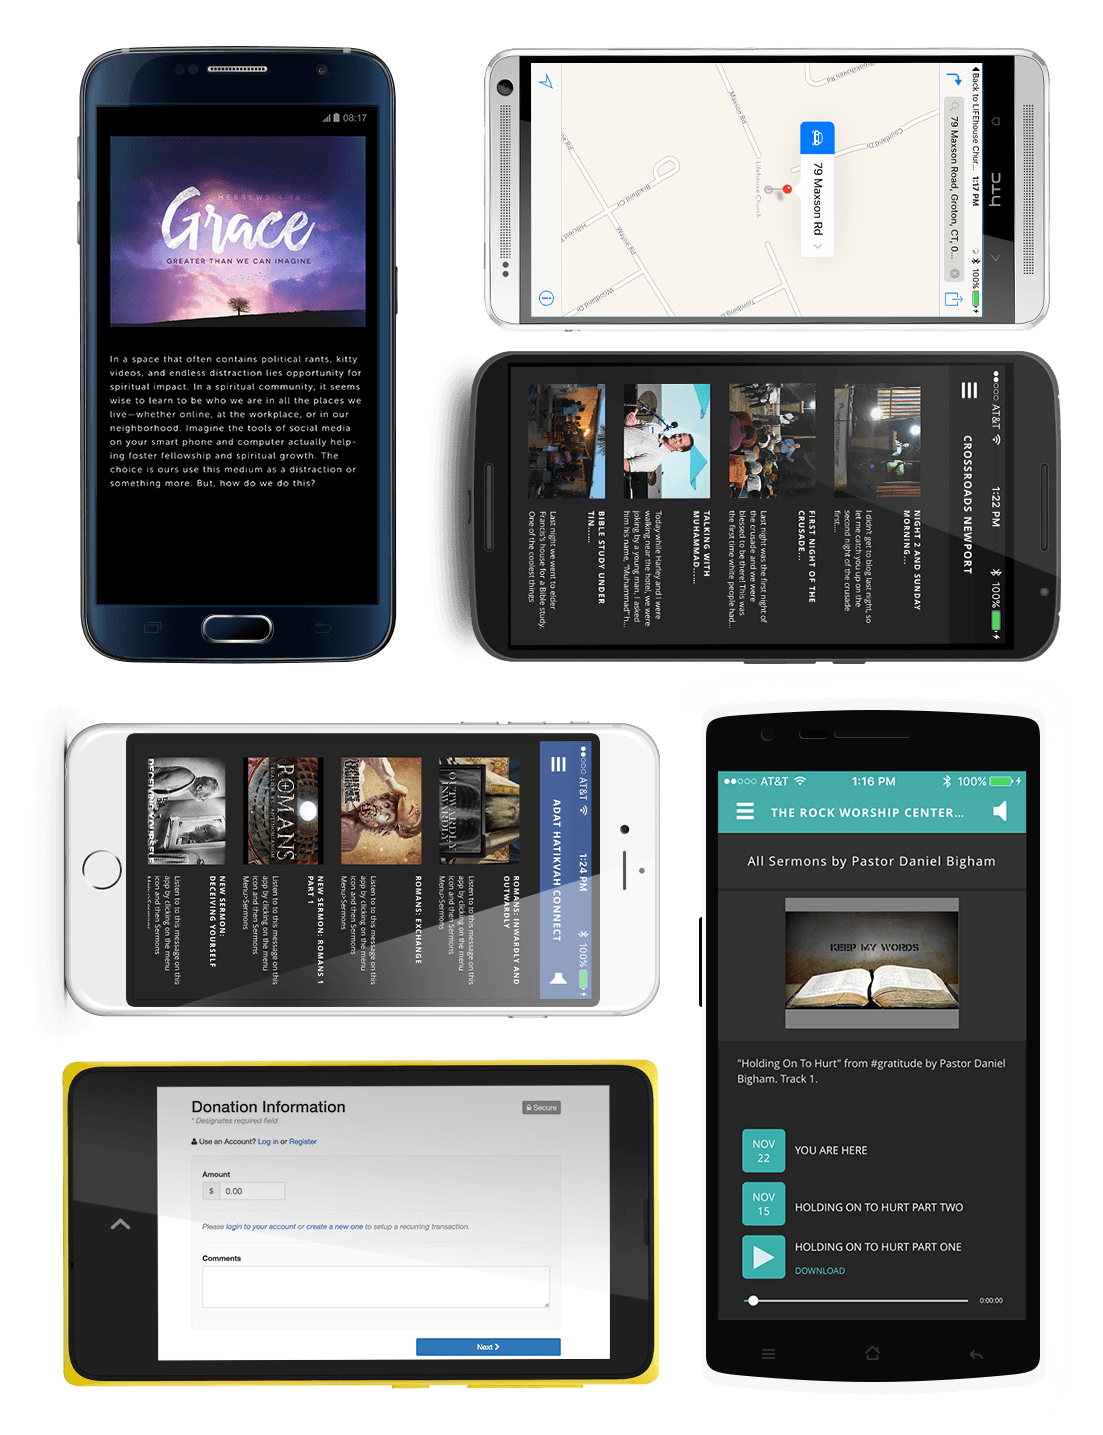 The Church App For IOS and Android Phones